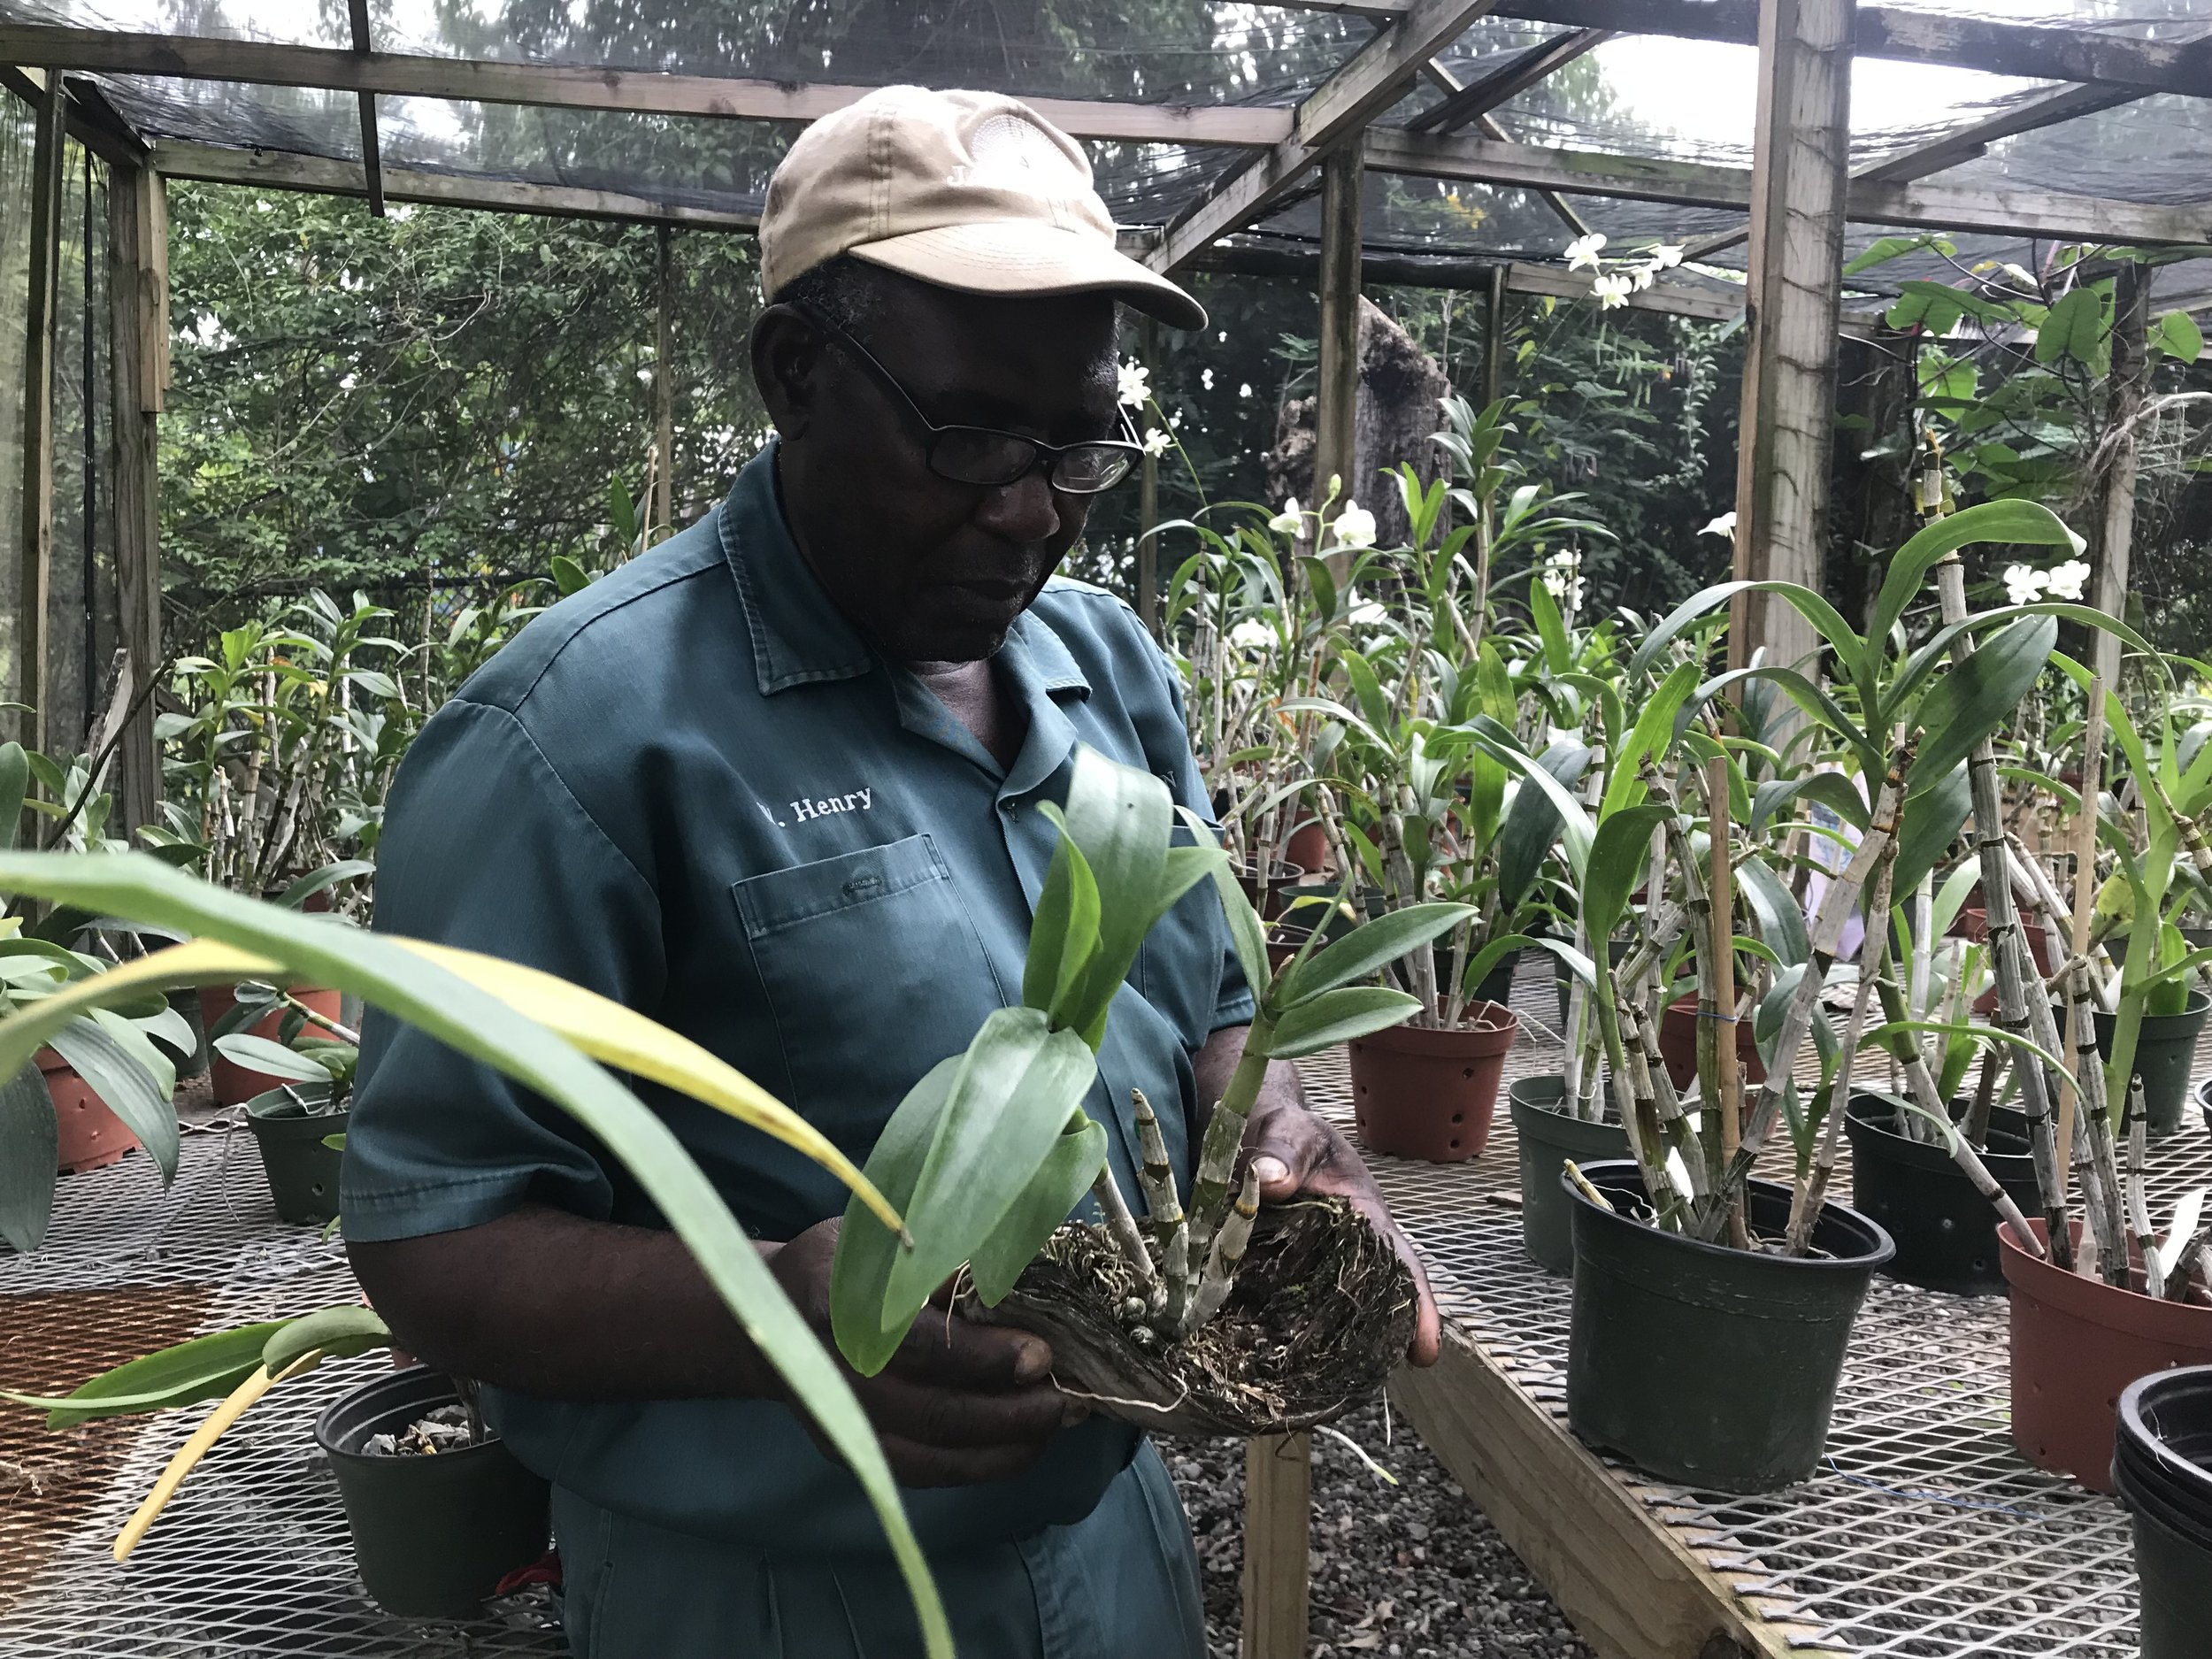 Jamaica Inn_Black People with Plants_Collection of Collections.jpg